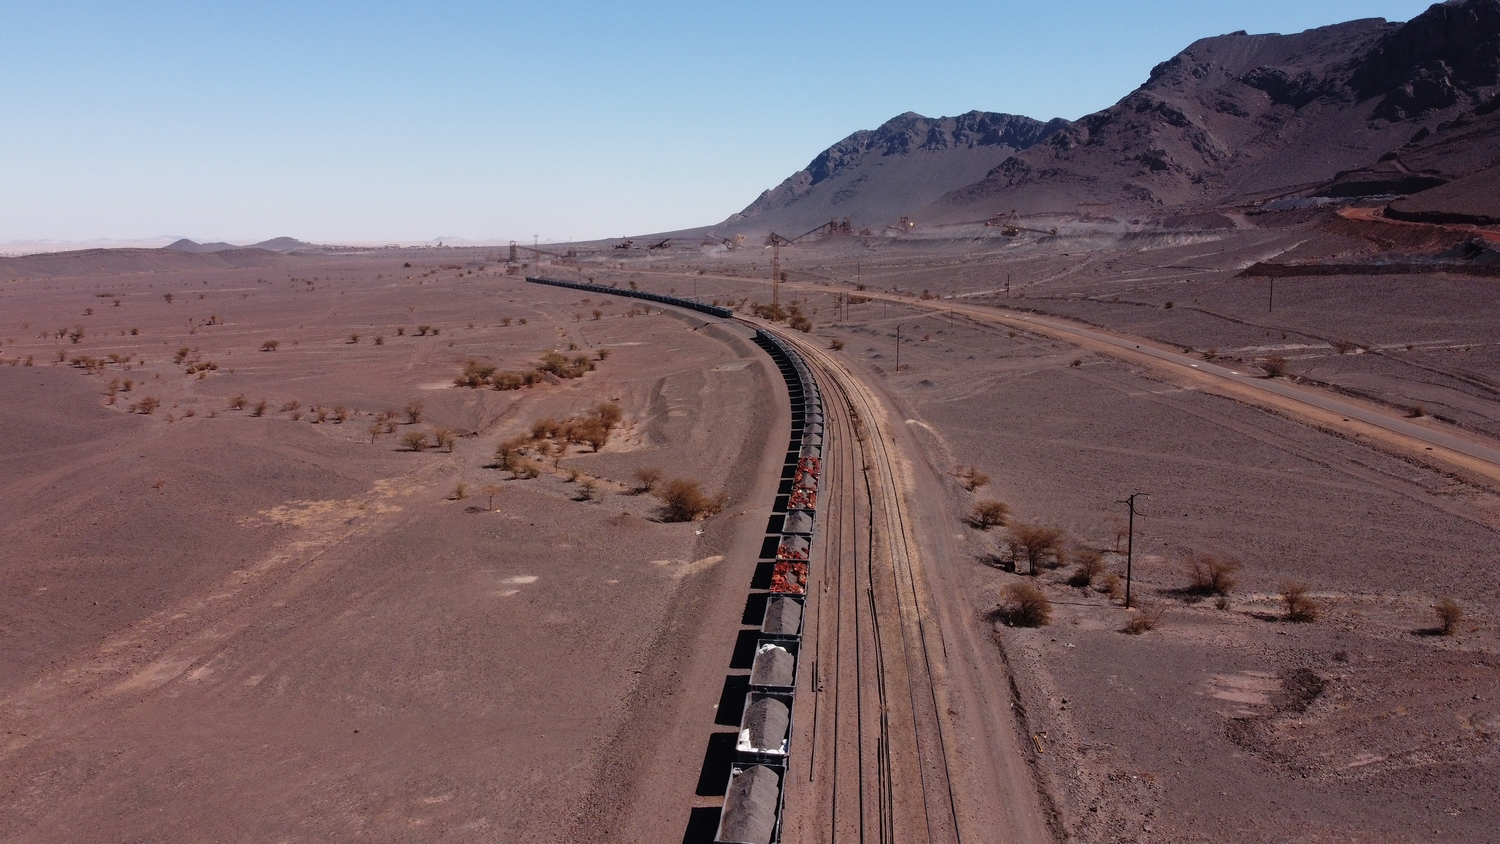 Riding the Ore Iron Train Mauritania Sahara Desert Hematite Mineral